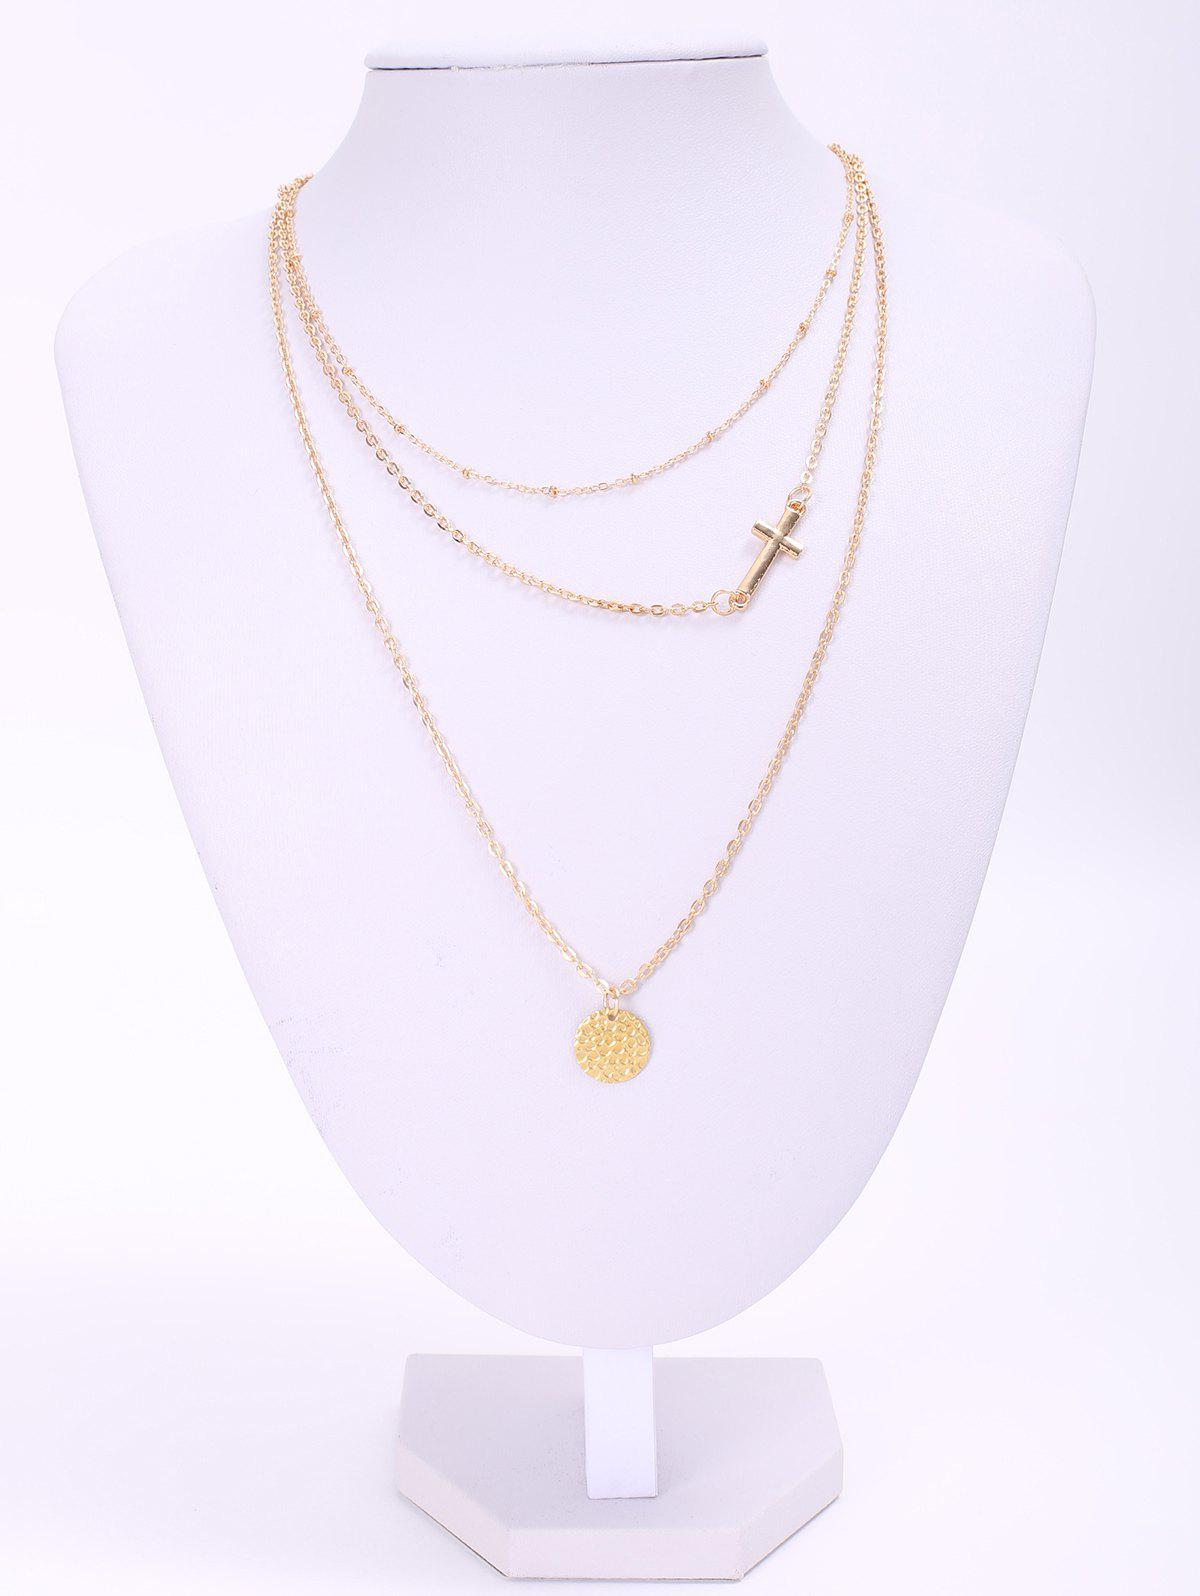 Dazzling Solid Color Sequins and Cross Embellished Multi-Layered Women's Necklace - AS THE PICTURE